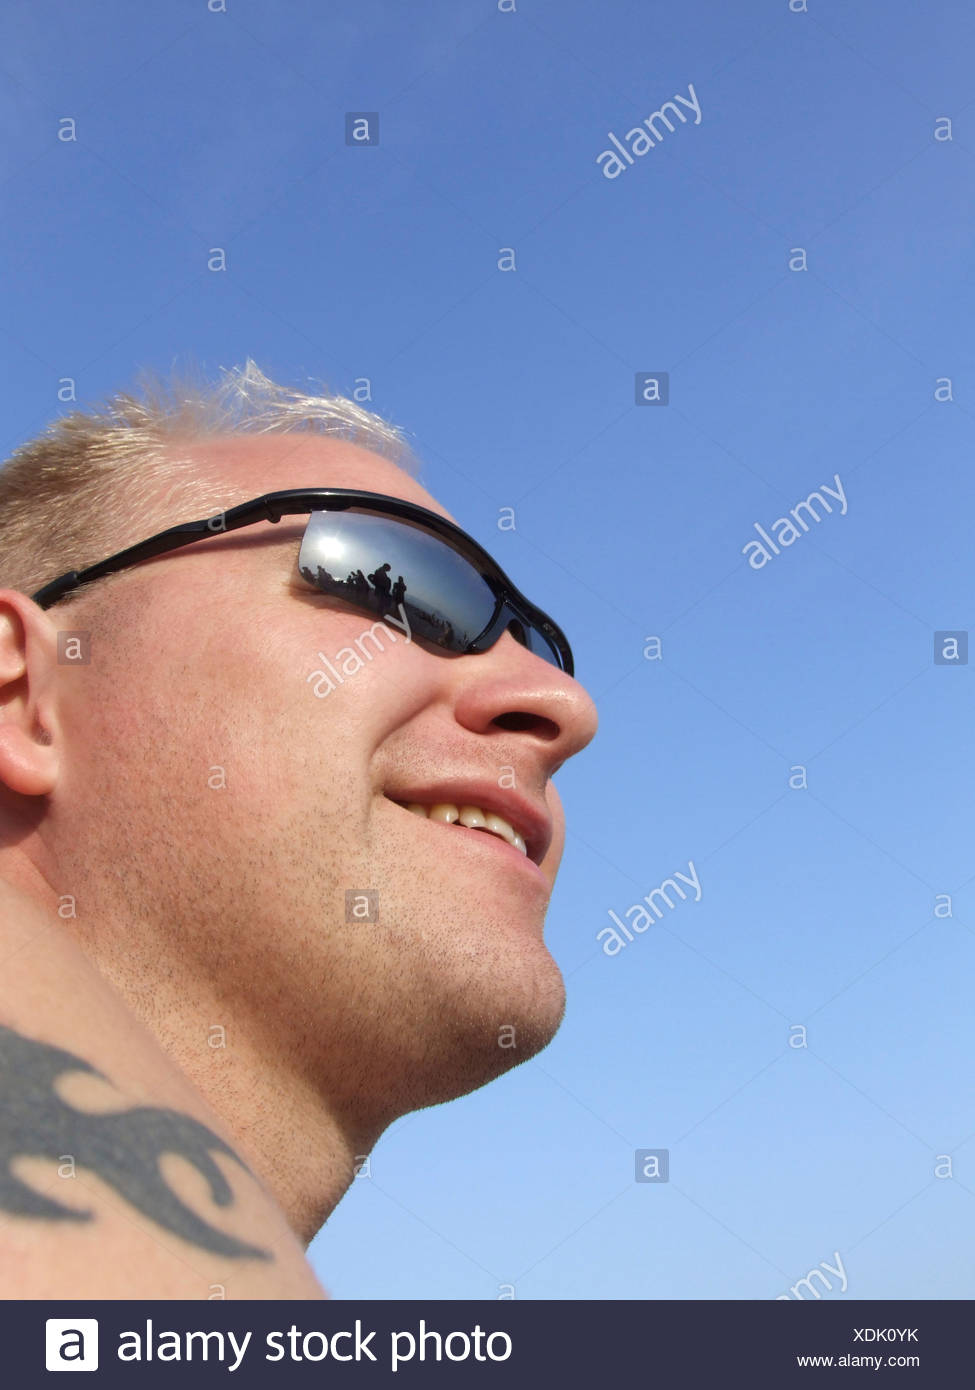 3e9b8a3d8830 Mid adult man wearing sunglasses close up low angle view Stock Photo ...